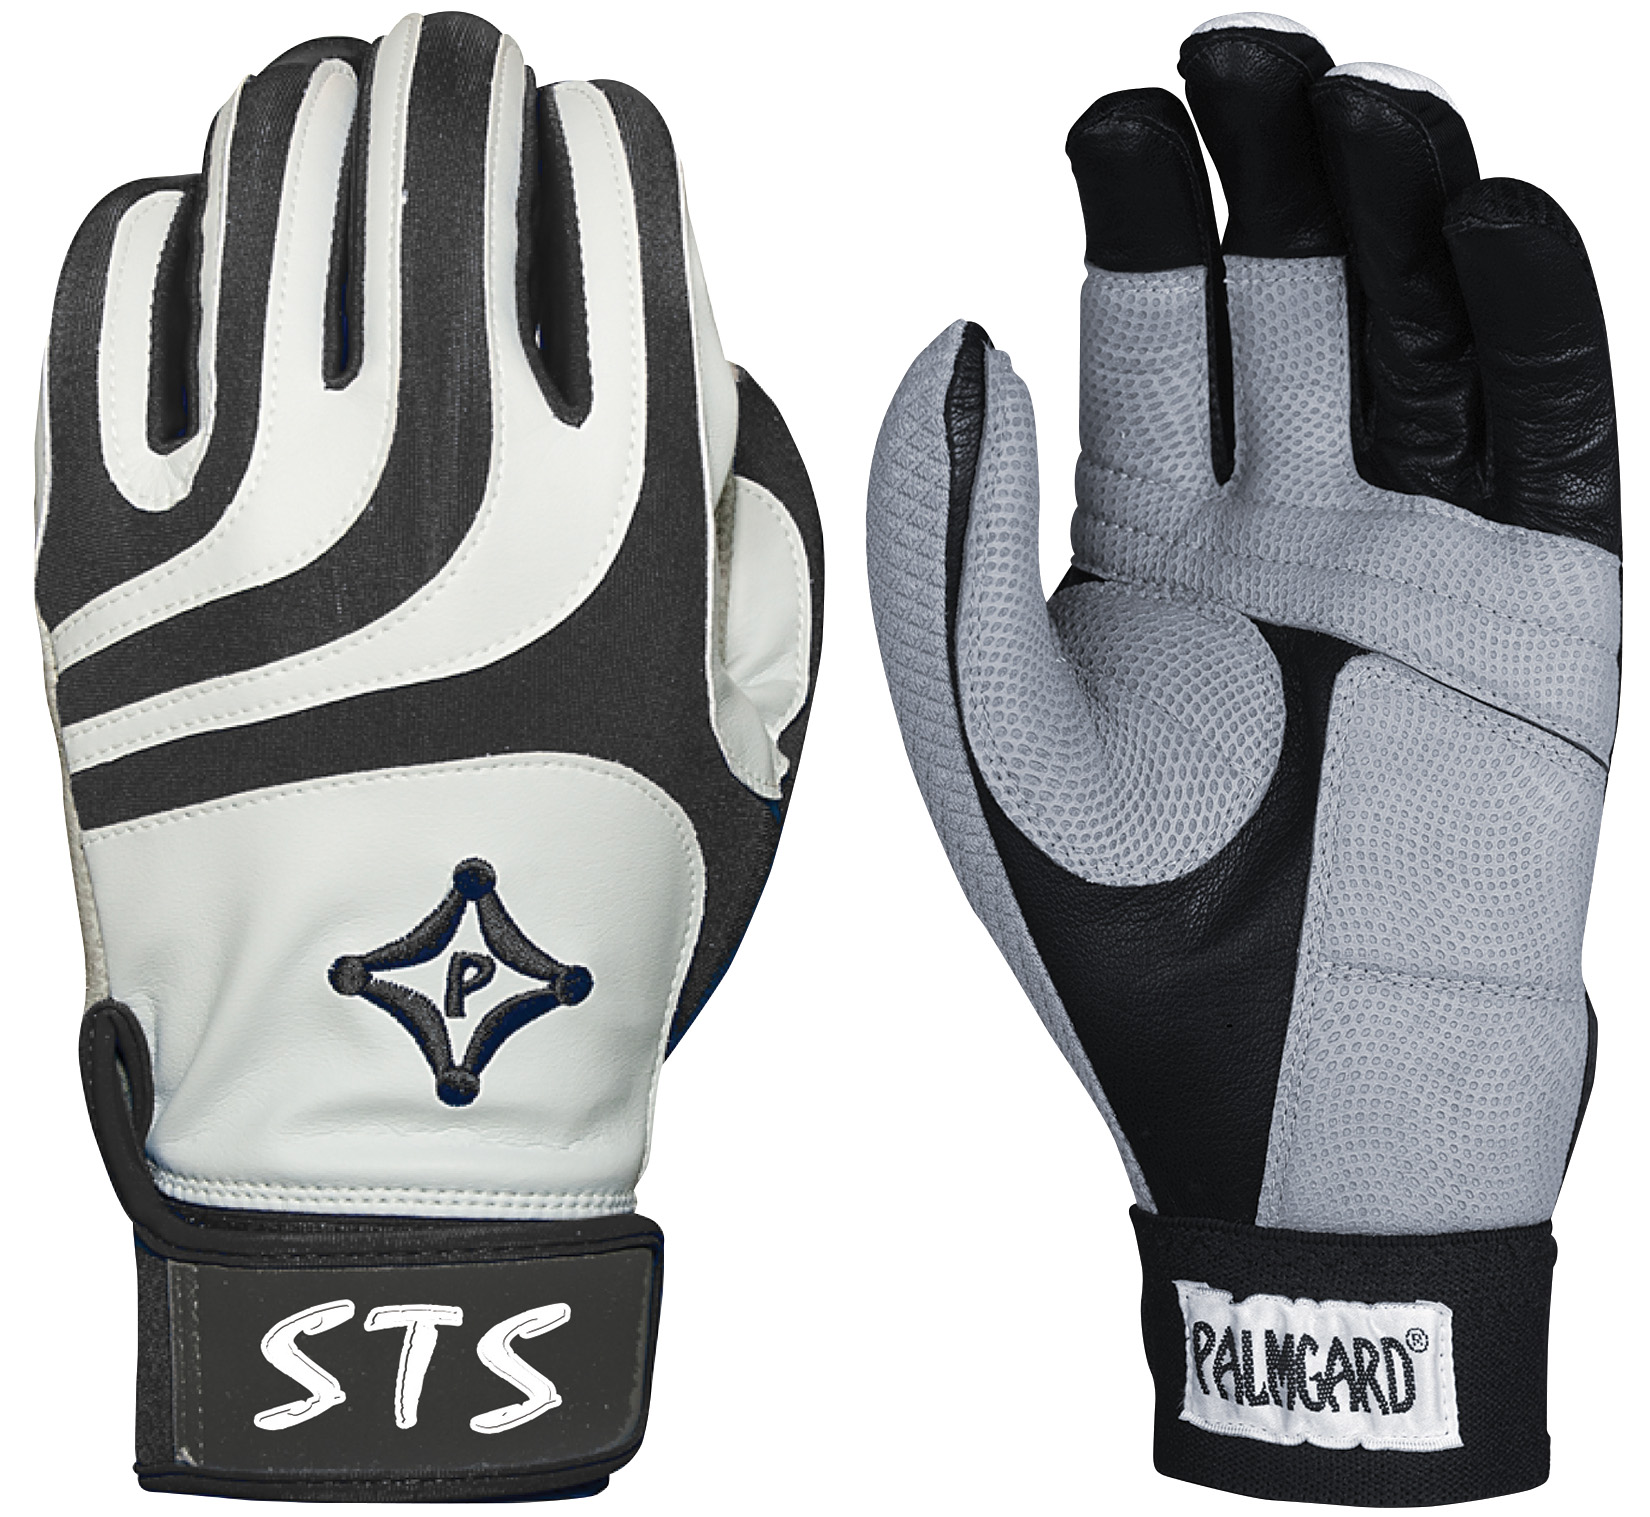 STABLK Palmgard STS Protective Batting Glove - White/Black THUMBNAIL